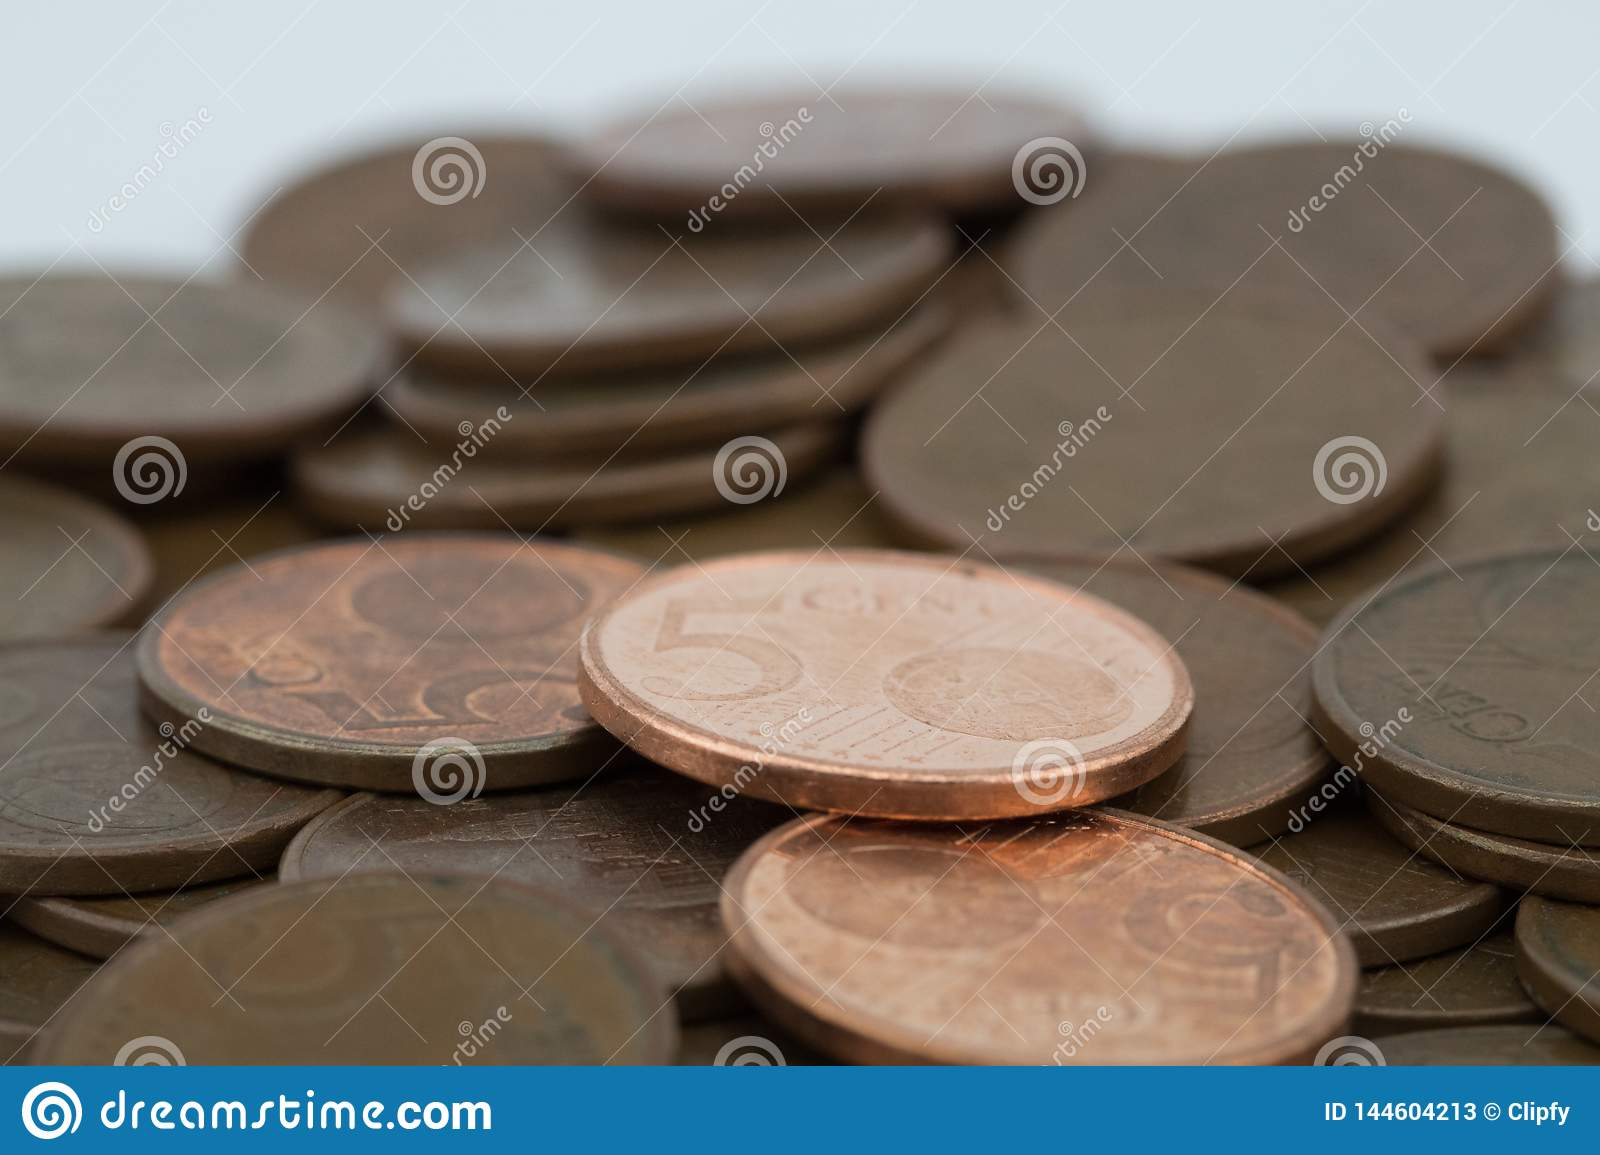 Bronze coins on white background. Coins of five euro cents. Savings